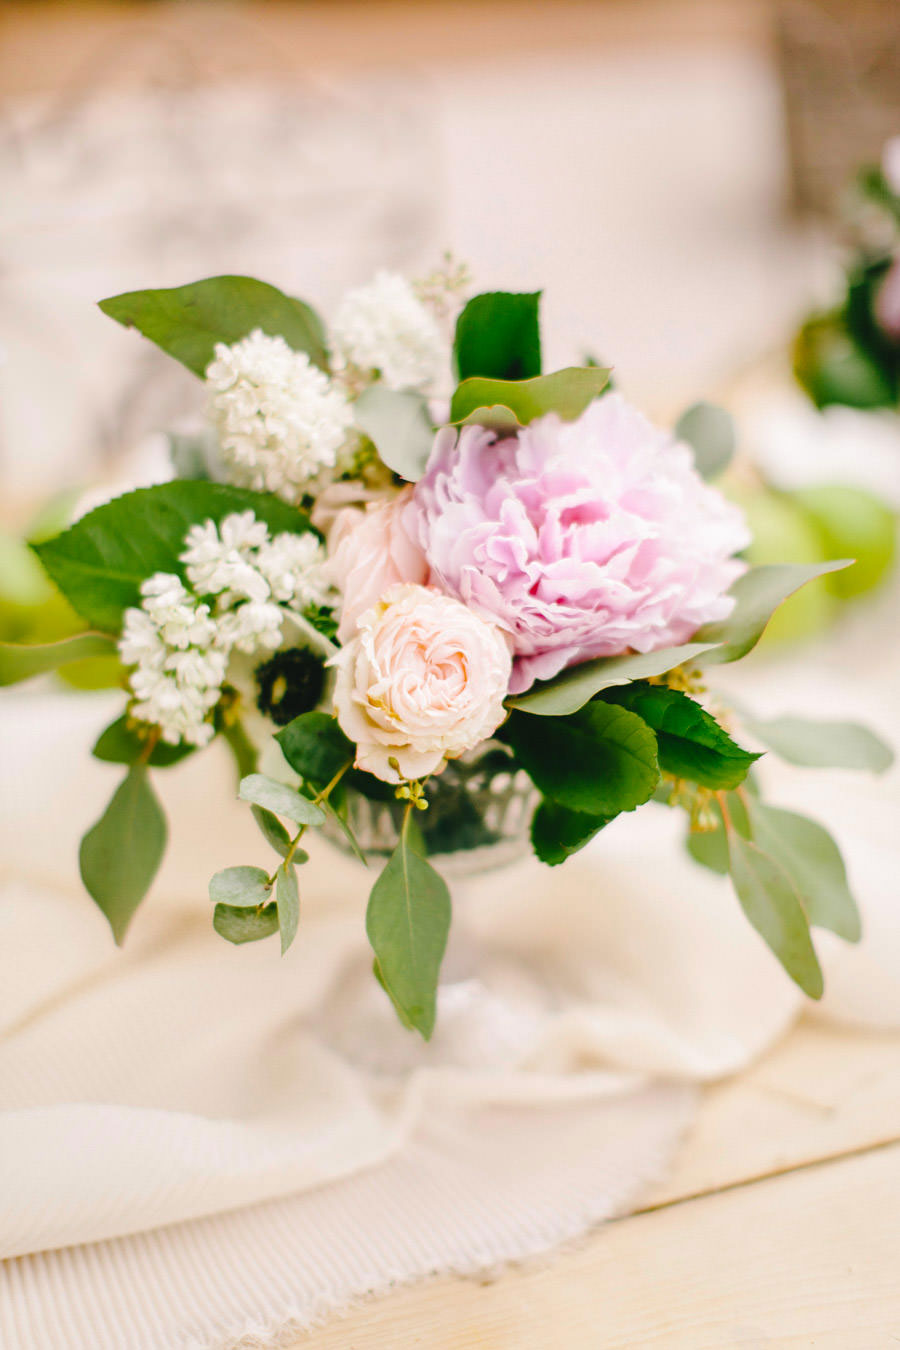 Wedding Inspiration: All Blossoms and Blush